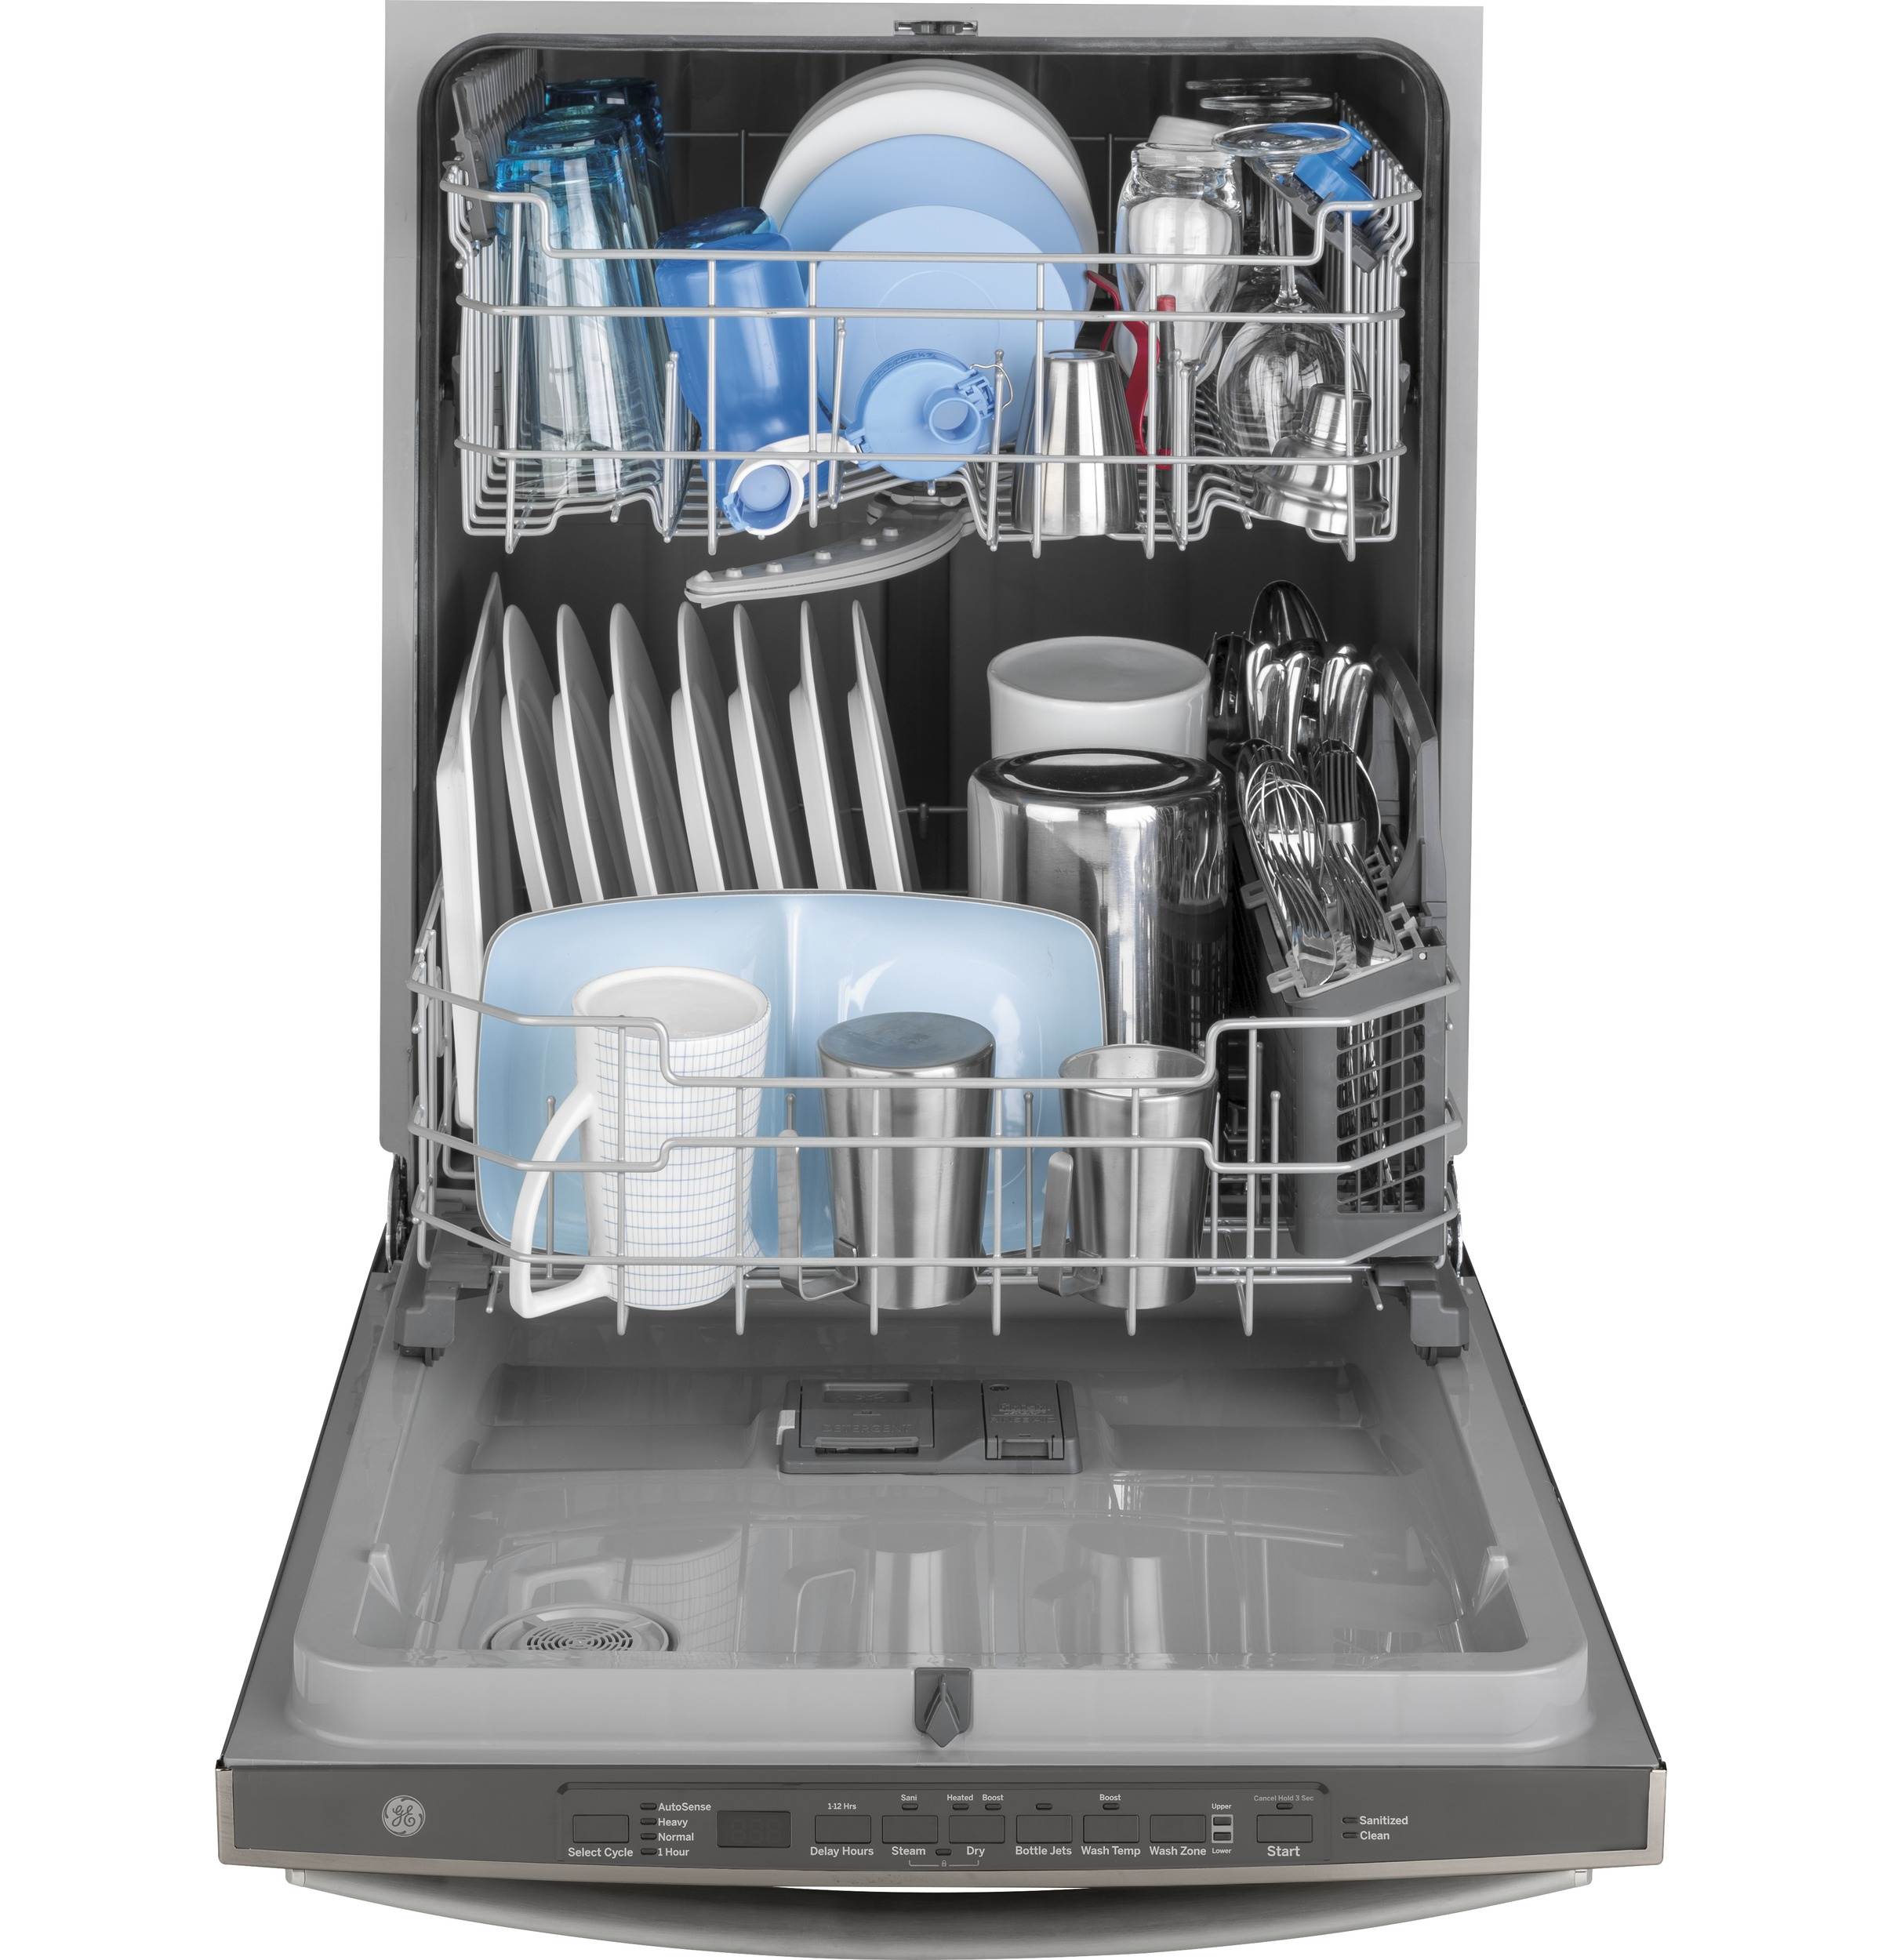 Model: GDT605PMMES | GE GE® Top Control with Plastic Interior Dishwasher with Sanitize Cycle & Dry Boost